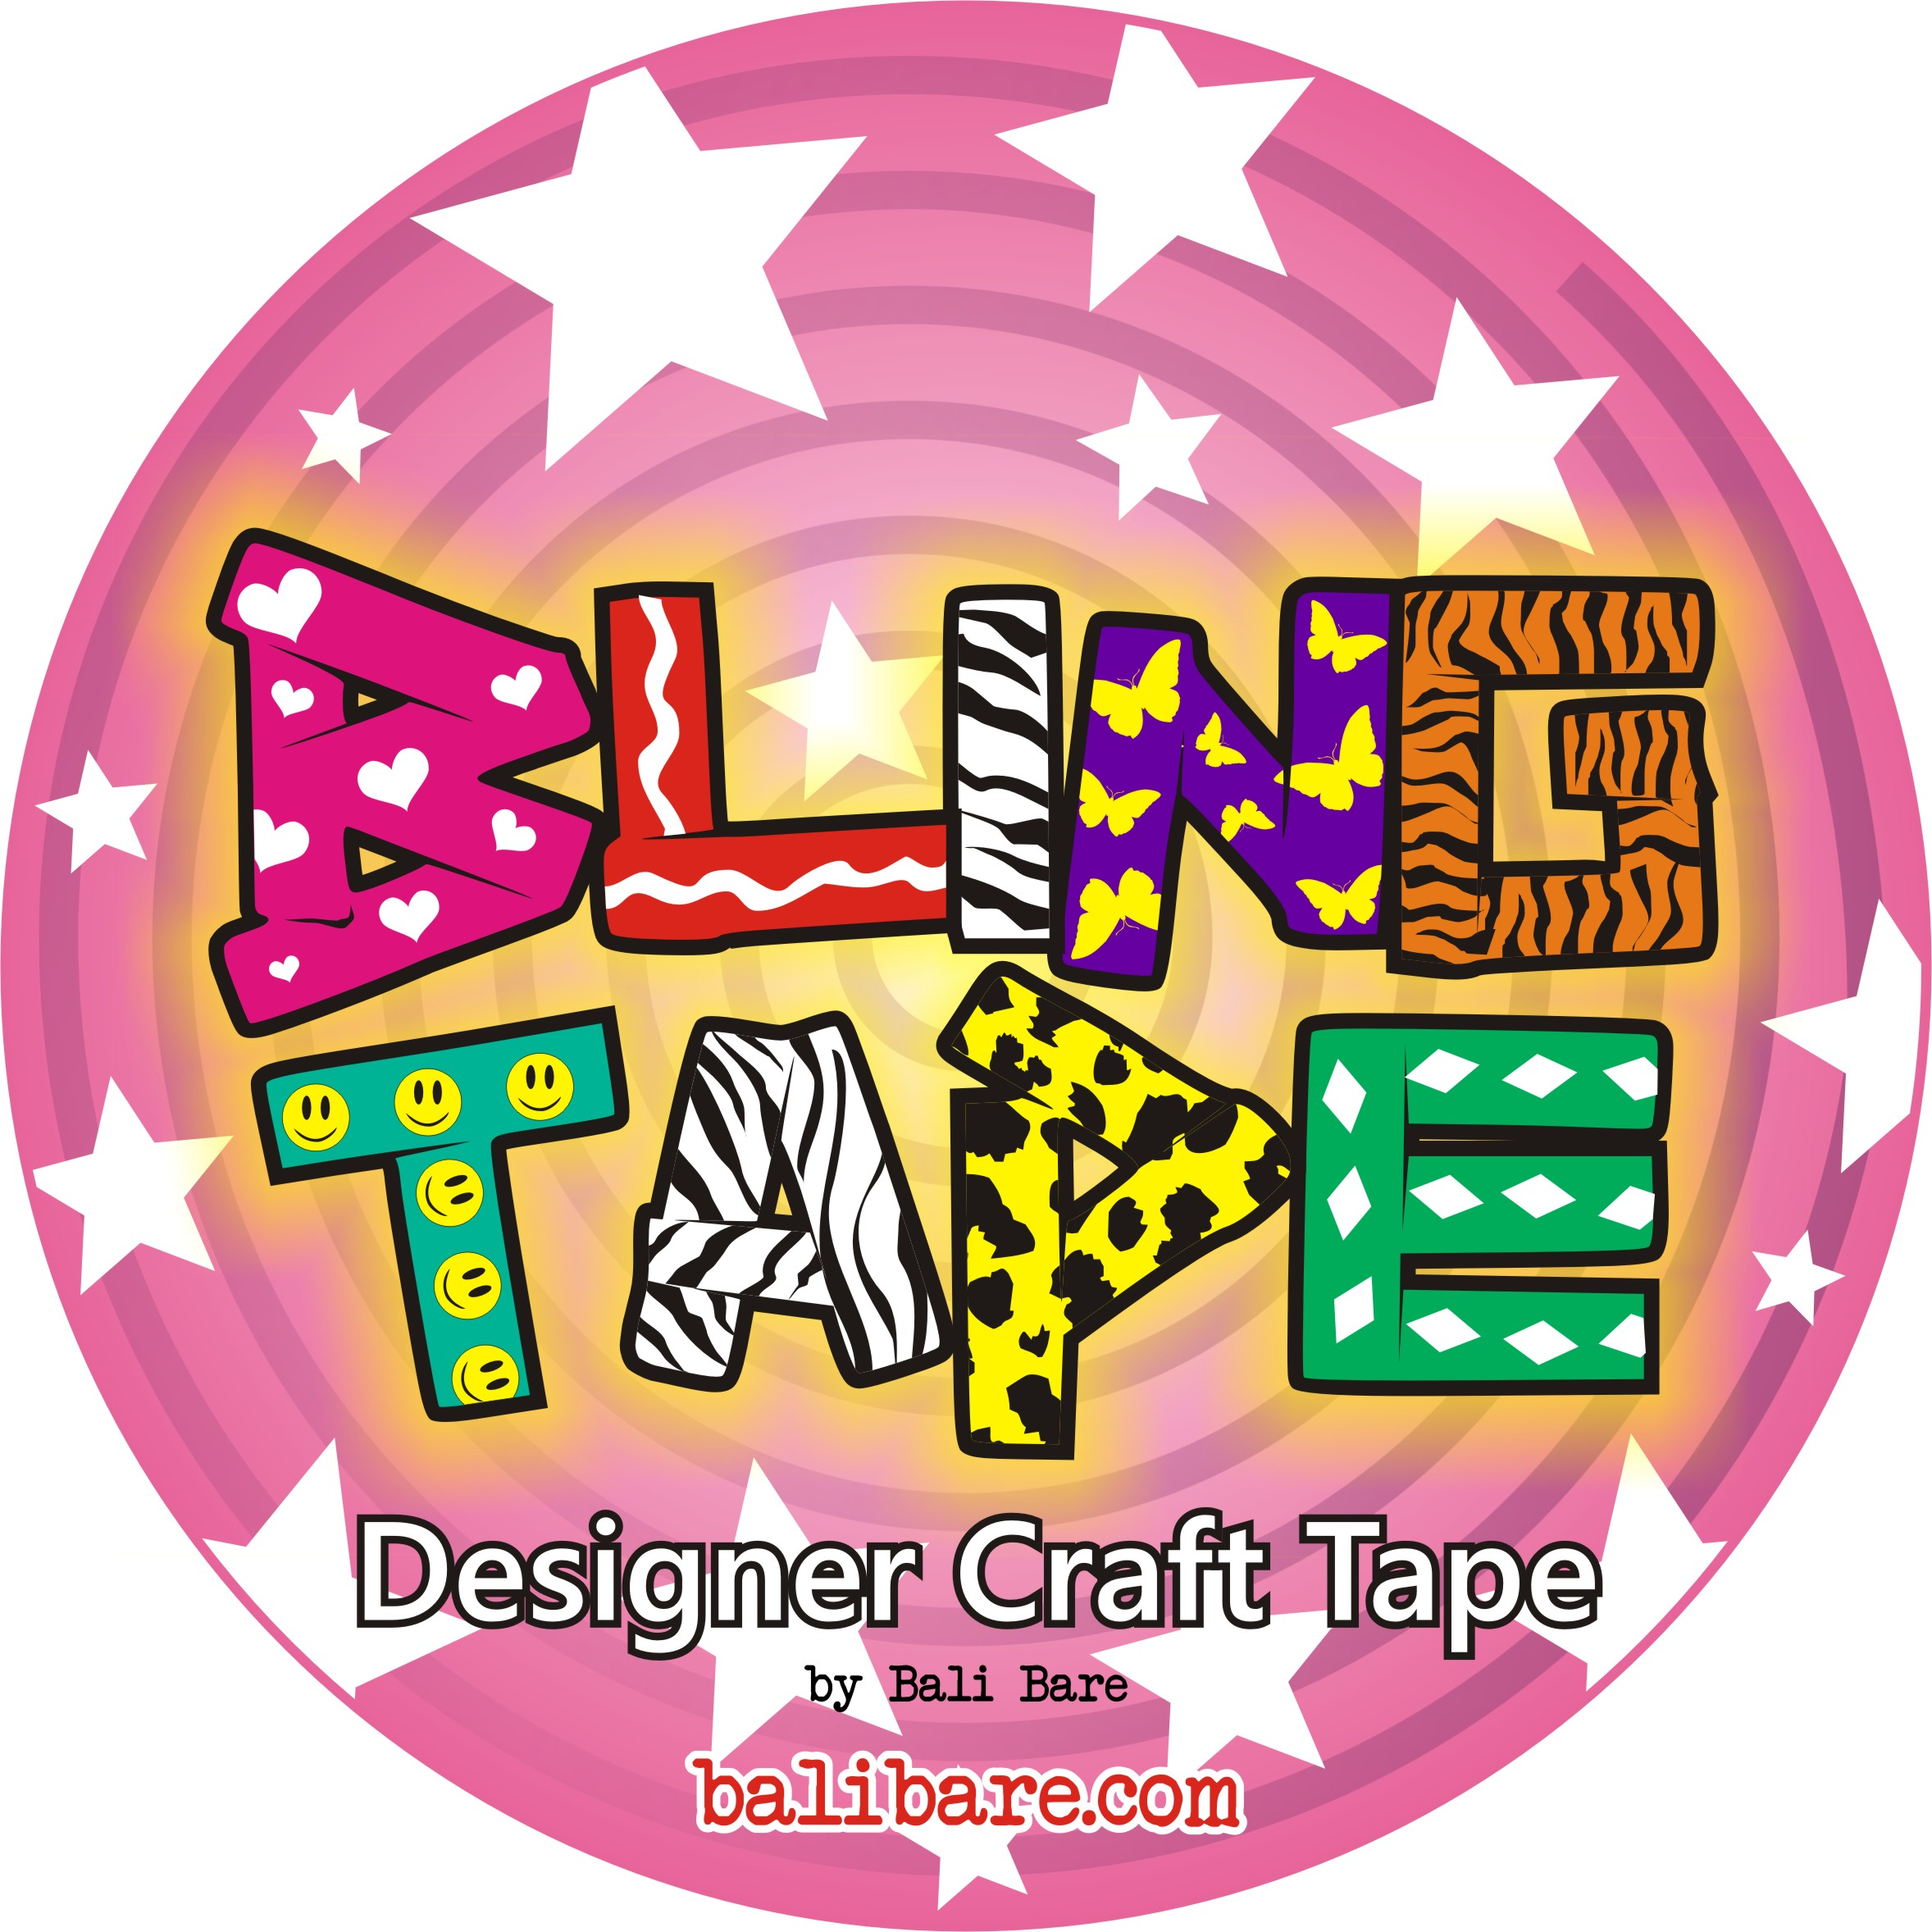 BLING TAPE by Bali Bare